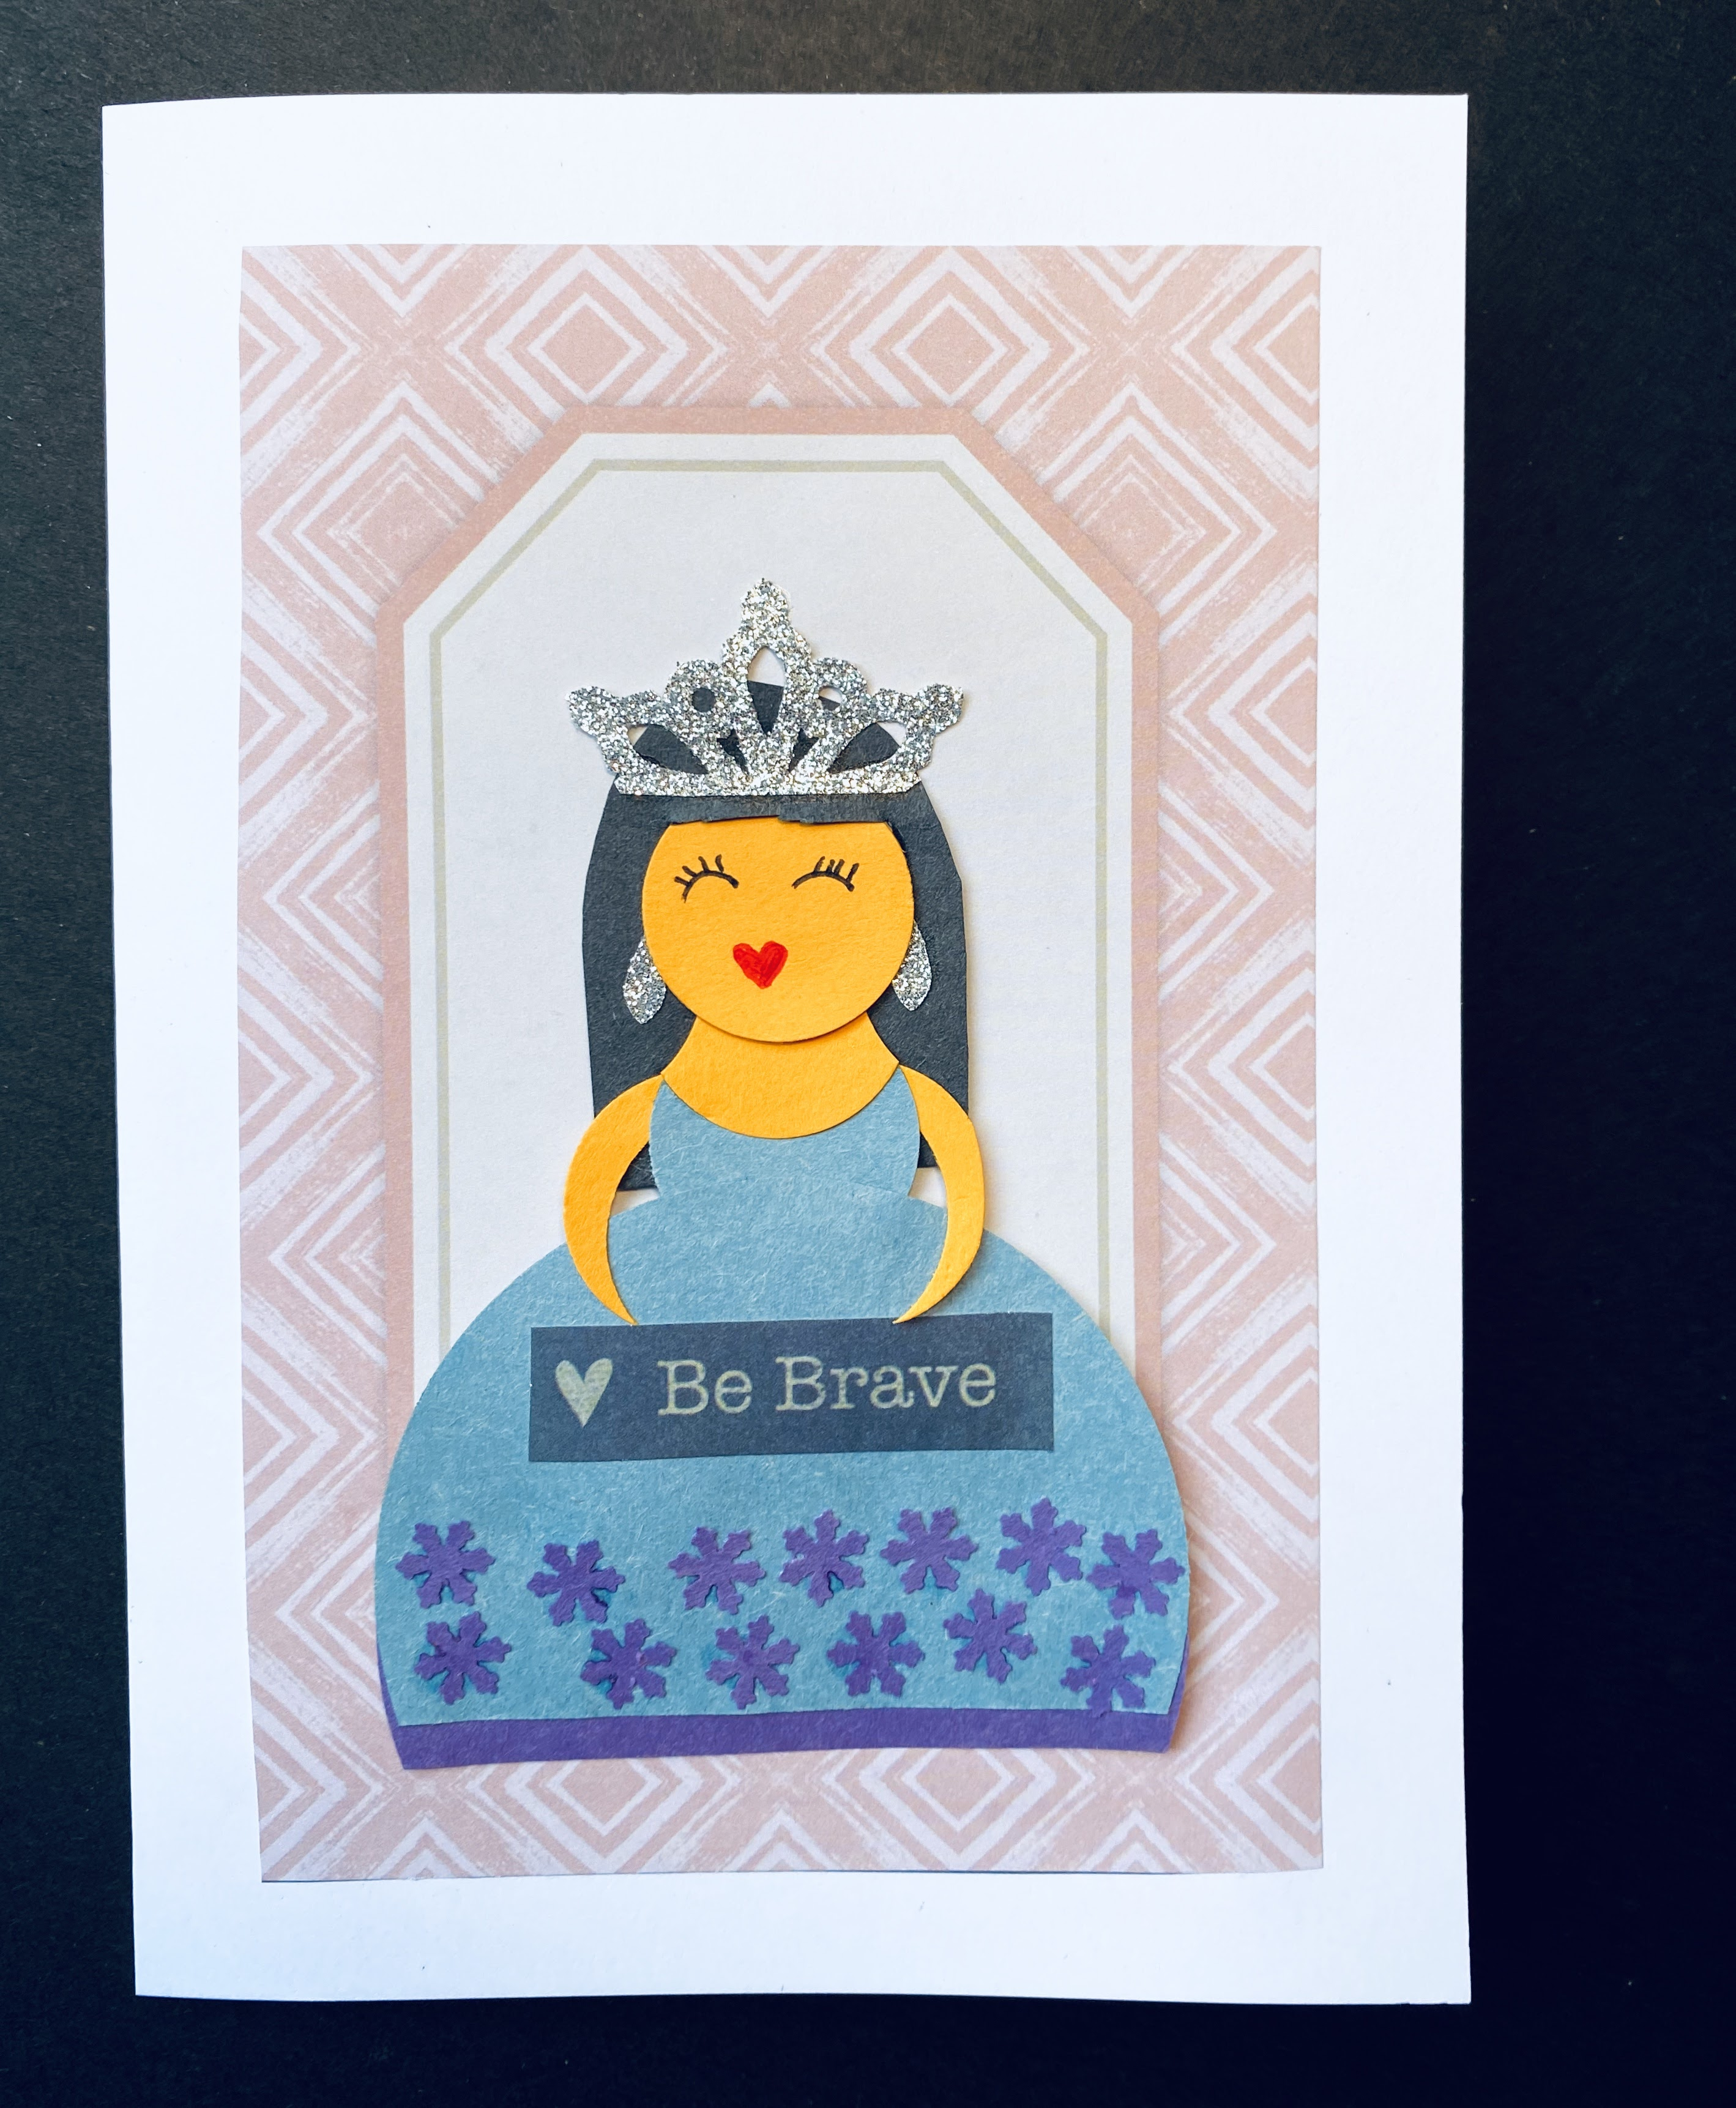 """The final results of our """"be brave"""" princess card made from paper.  She seeks to encourage the recipient of the card to be brave!"""